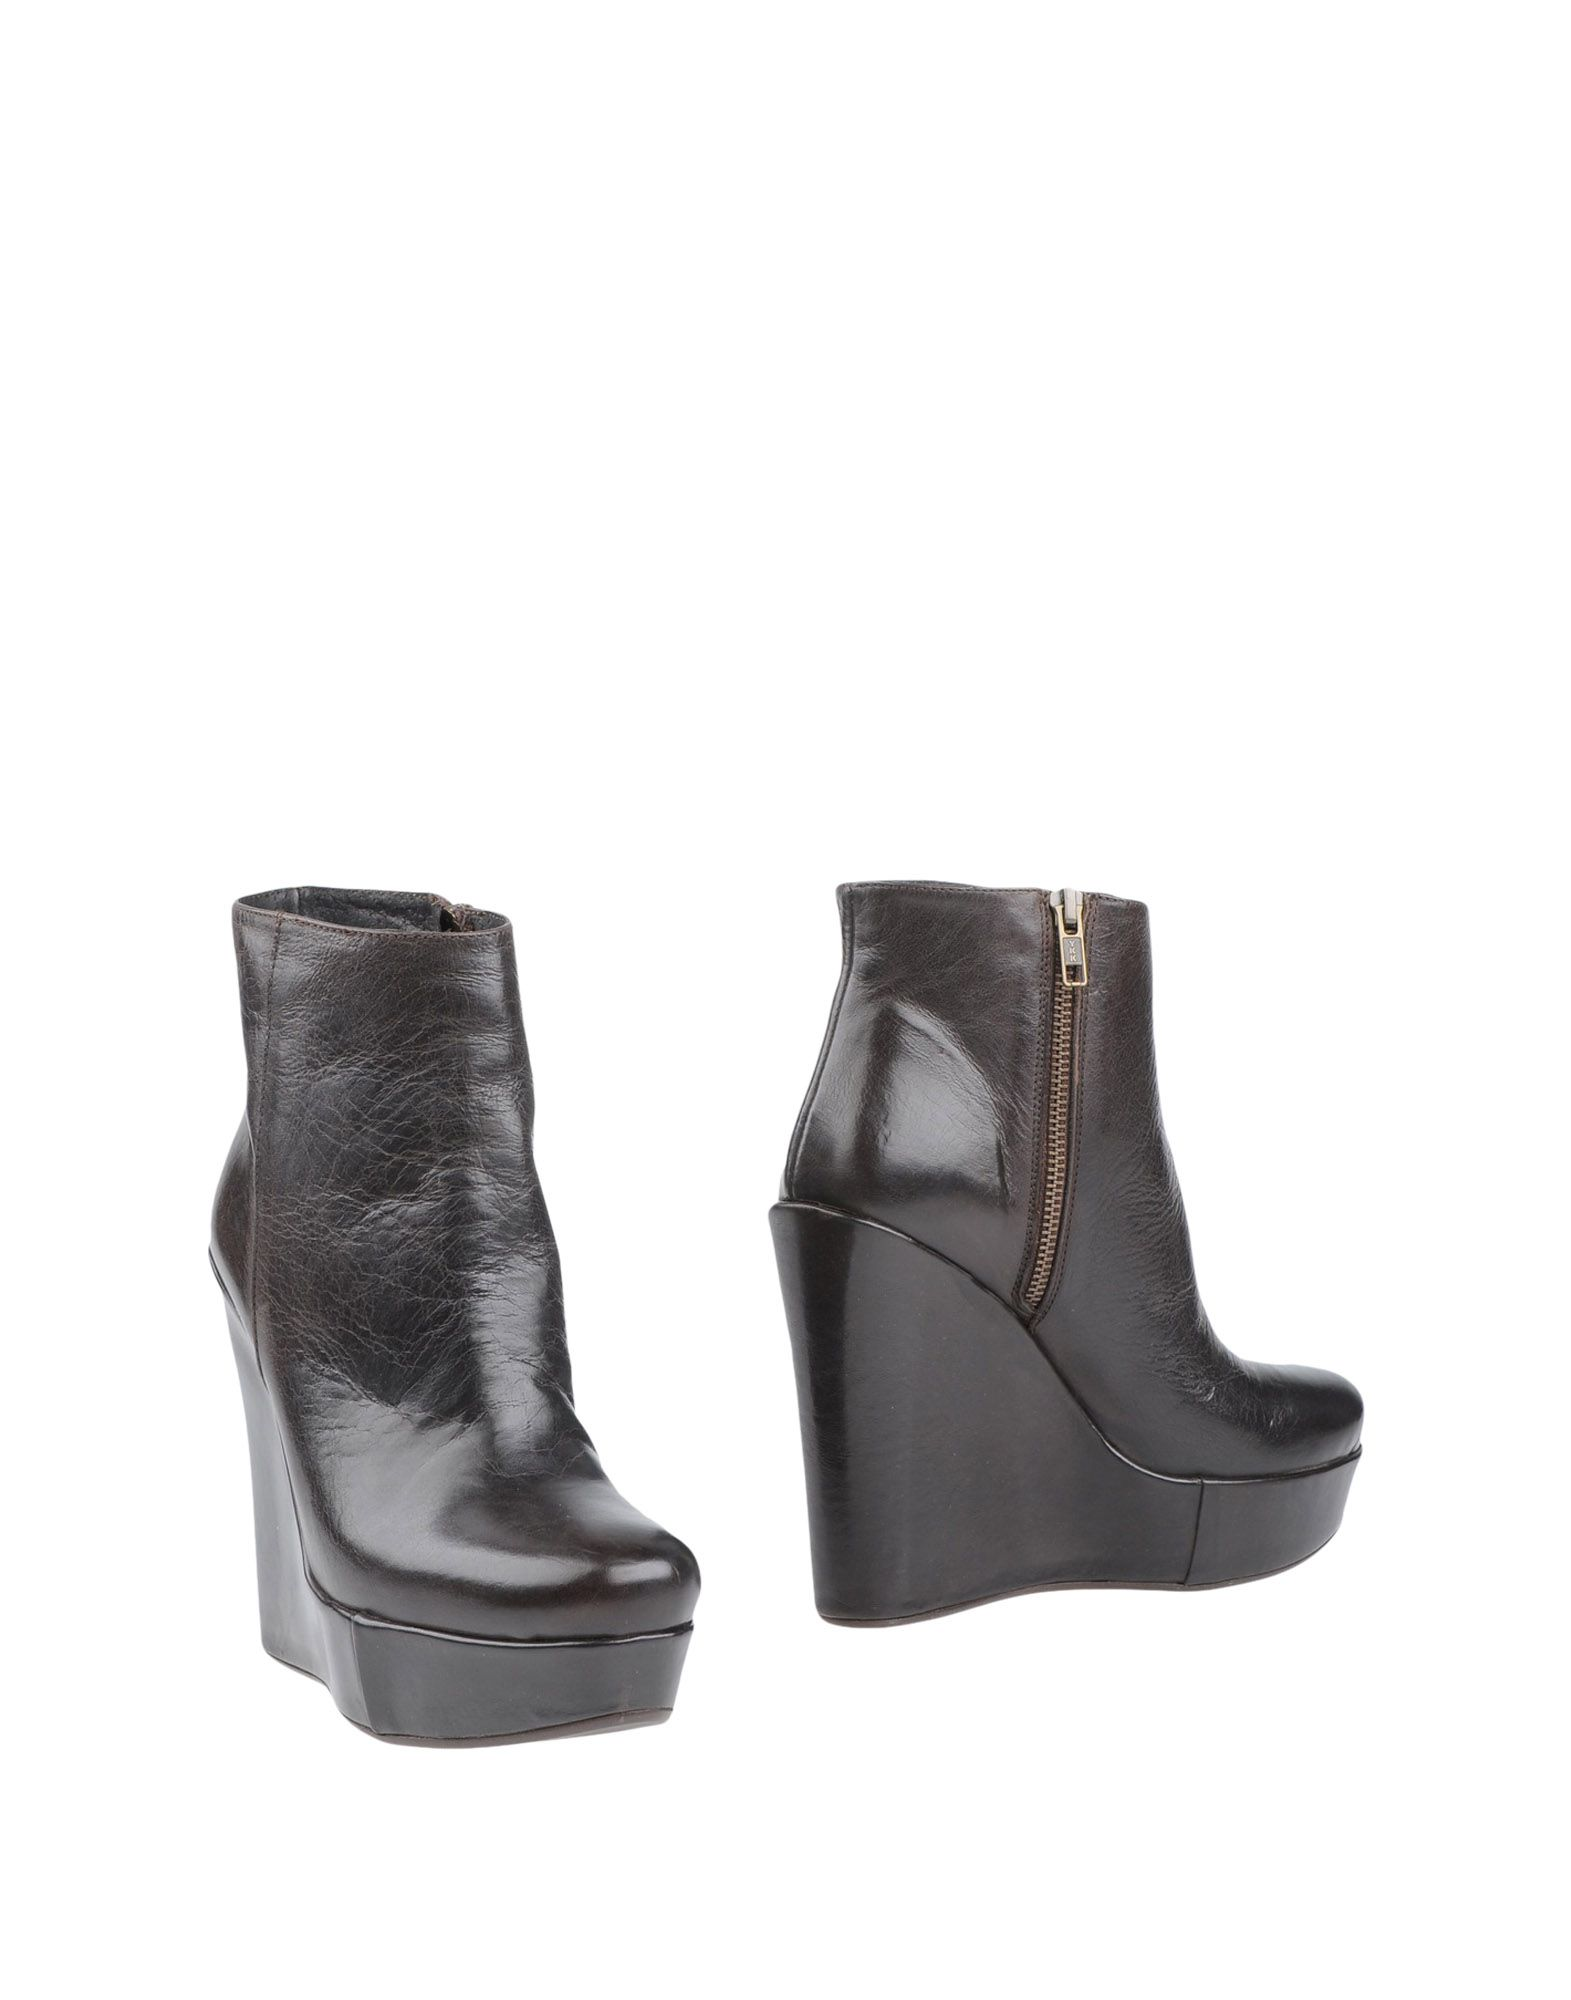 Bottine Life Femme - Bottines Life sur